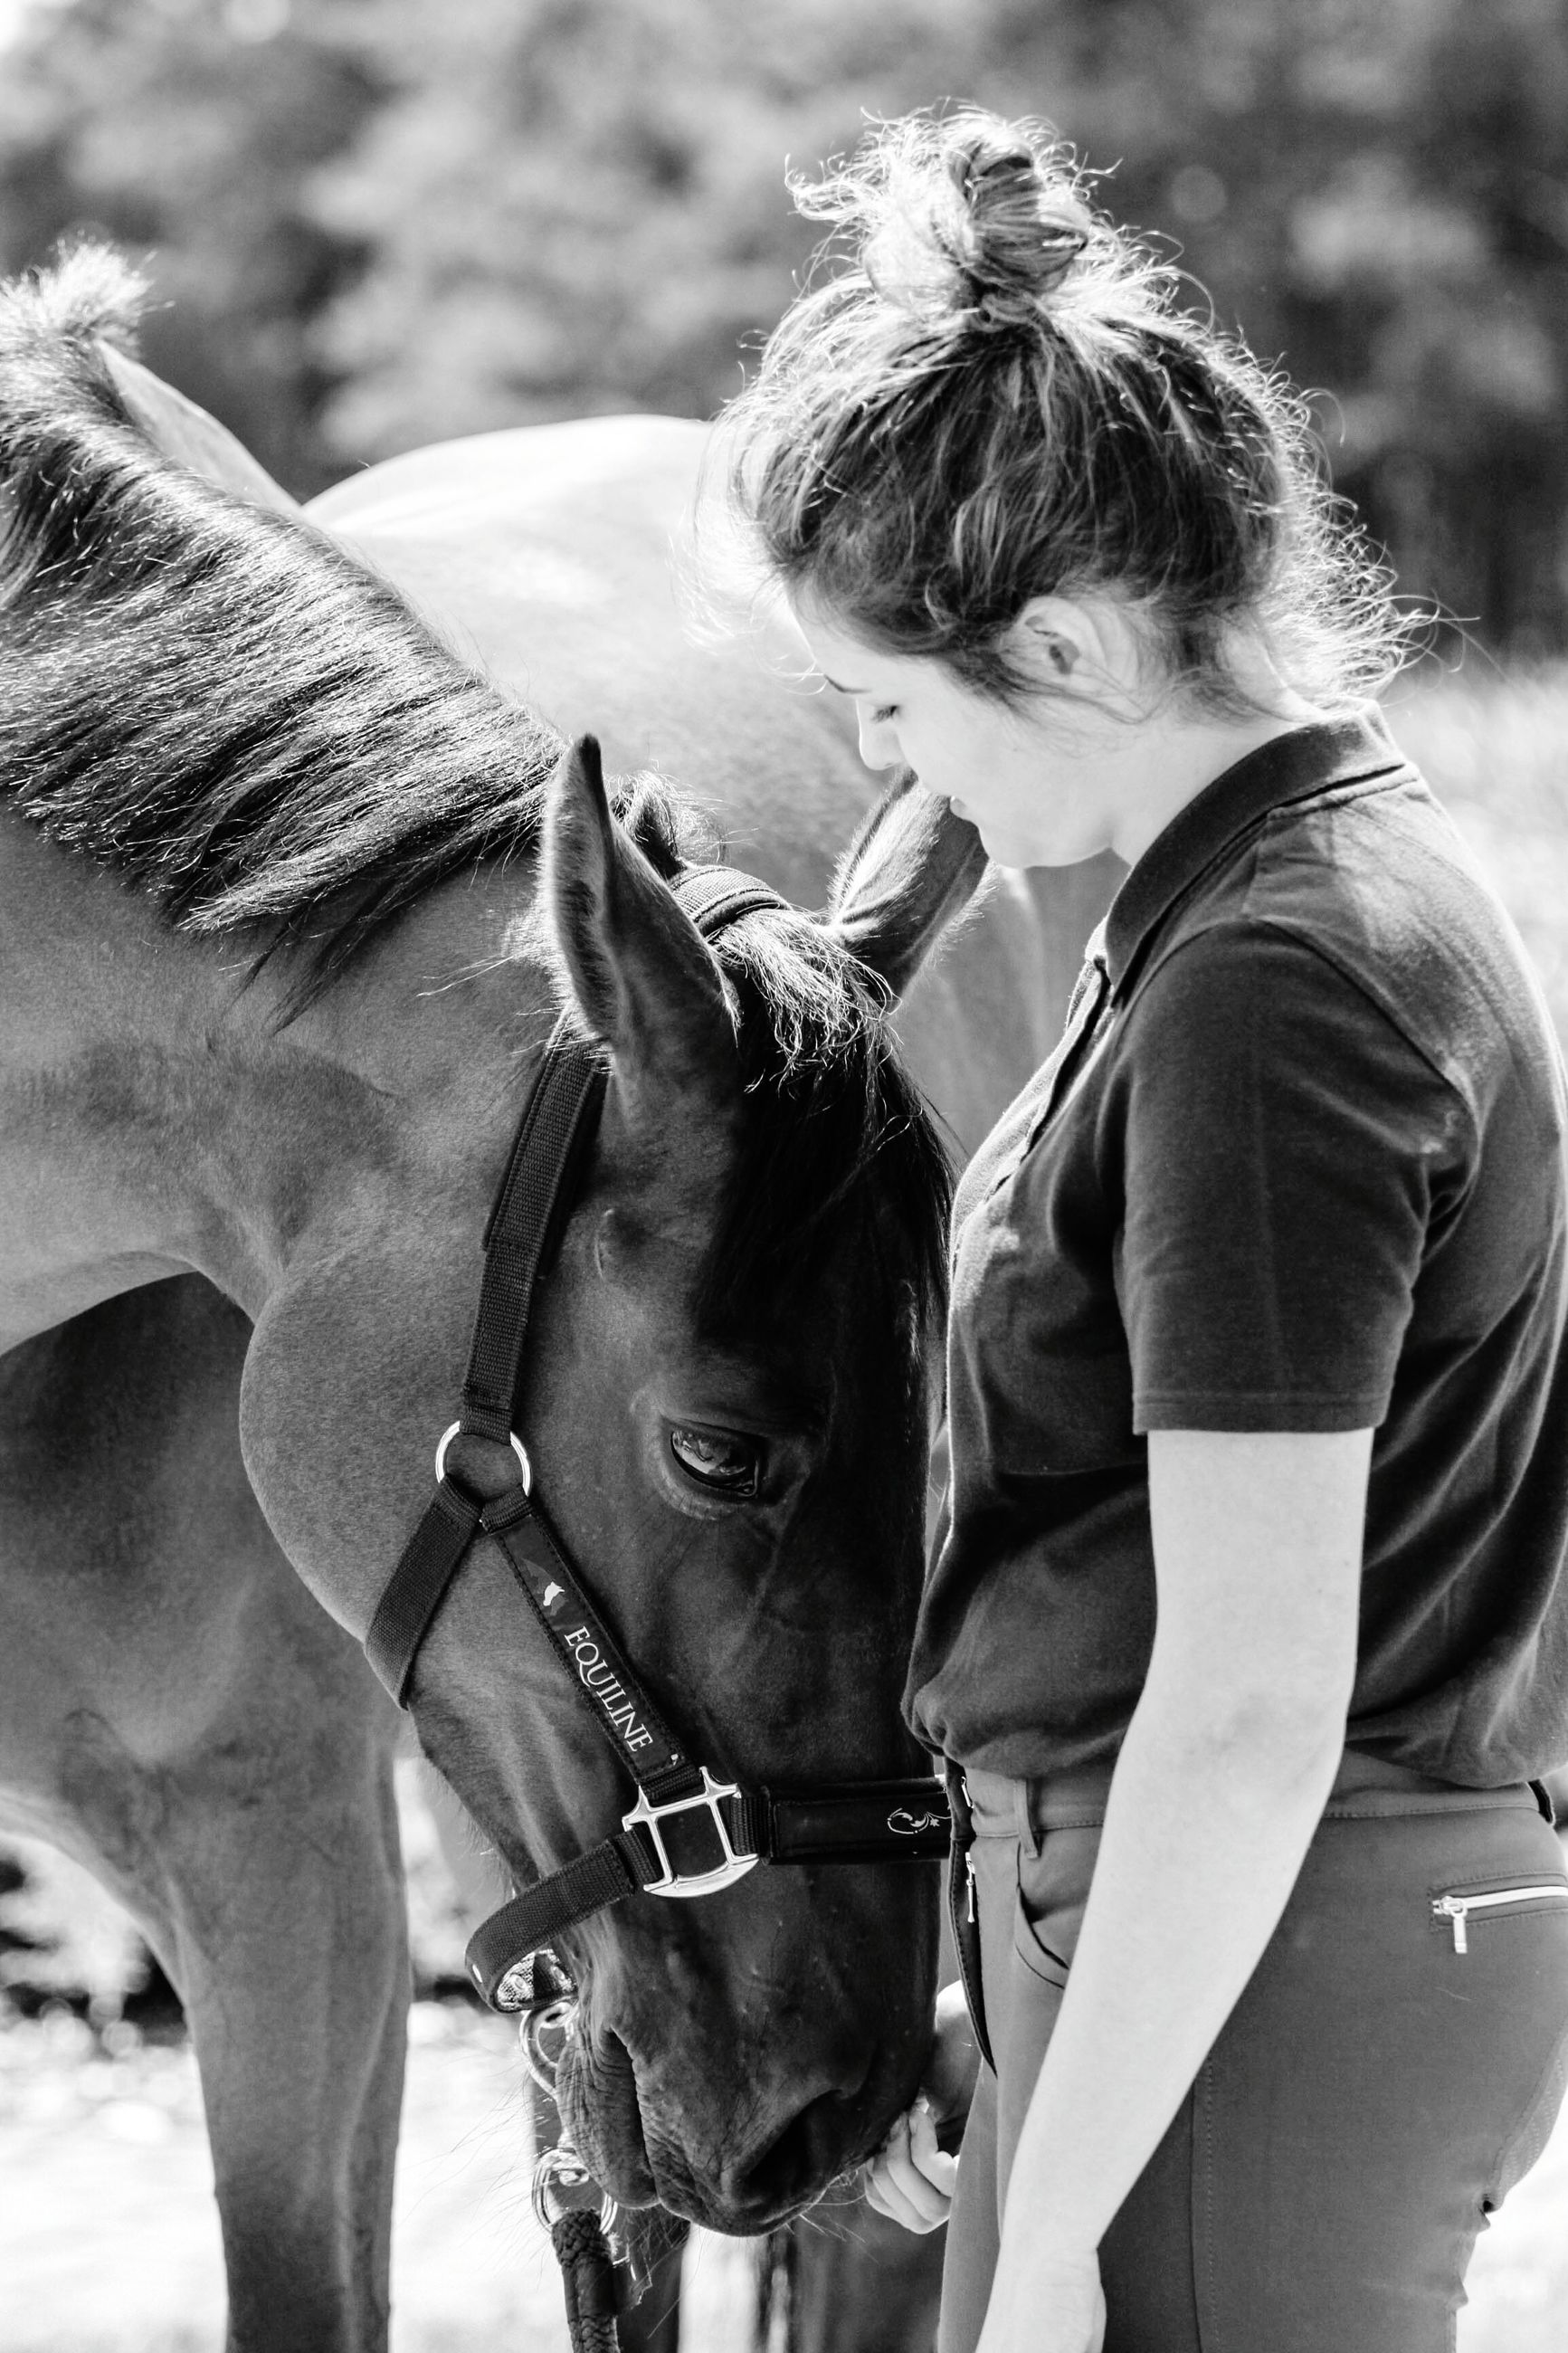 horse, domestic animals, mammal, animal themes, one animal, livestock, bridle, real people, focus on foreground, outdoors, day, standing, lifestyles, young adult, one person, young women, people